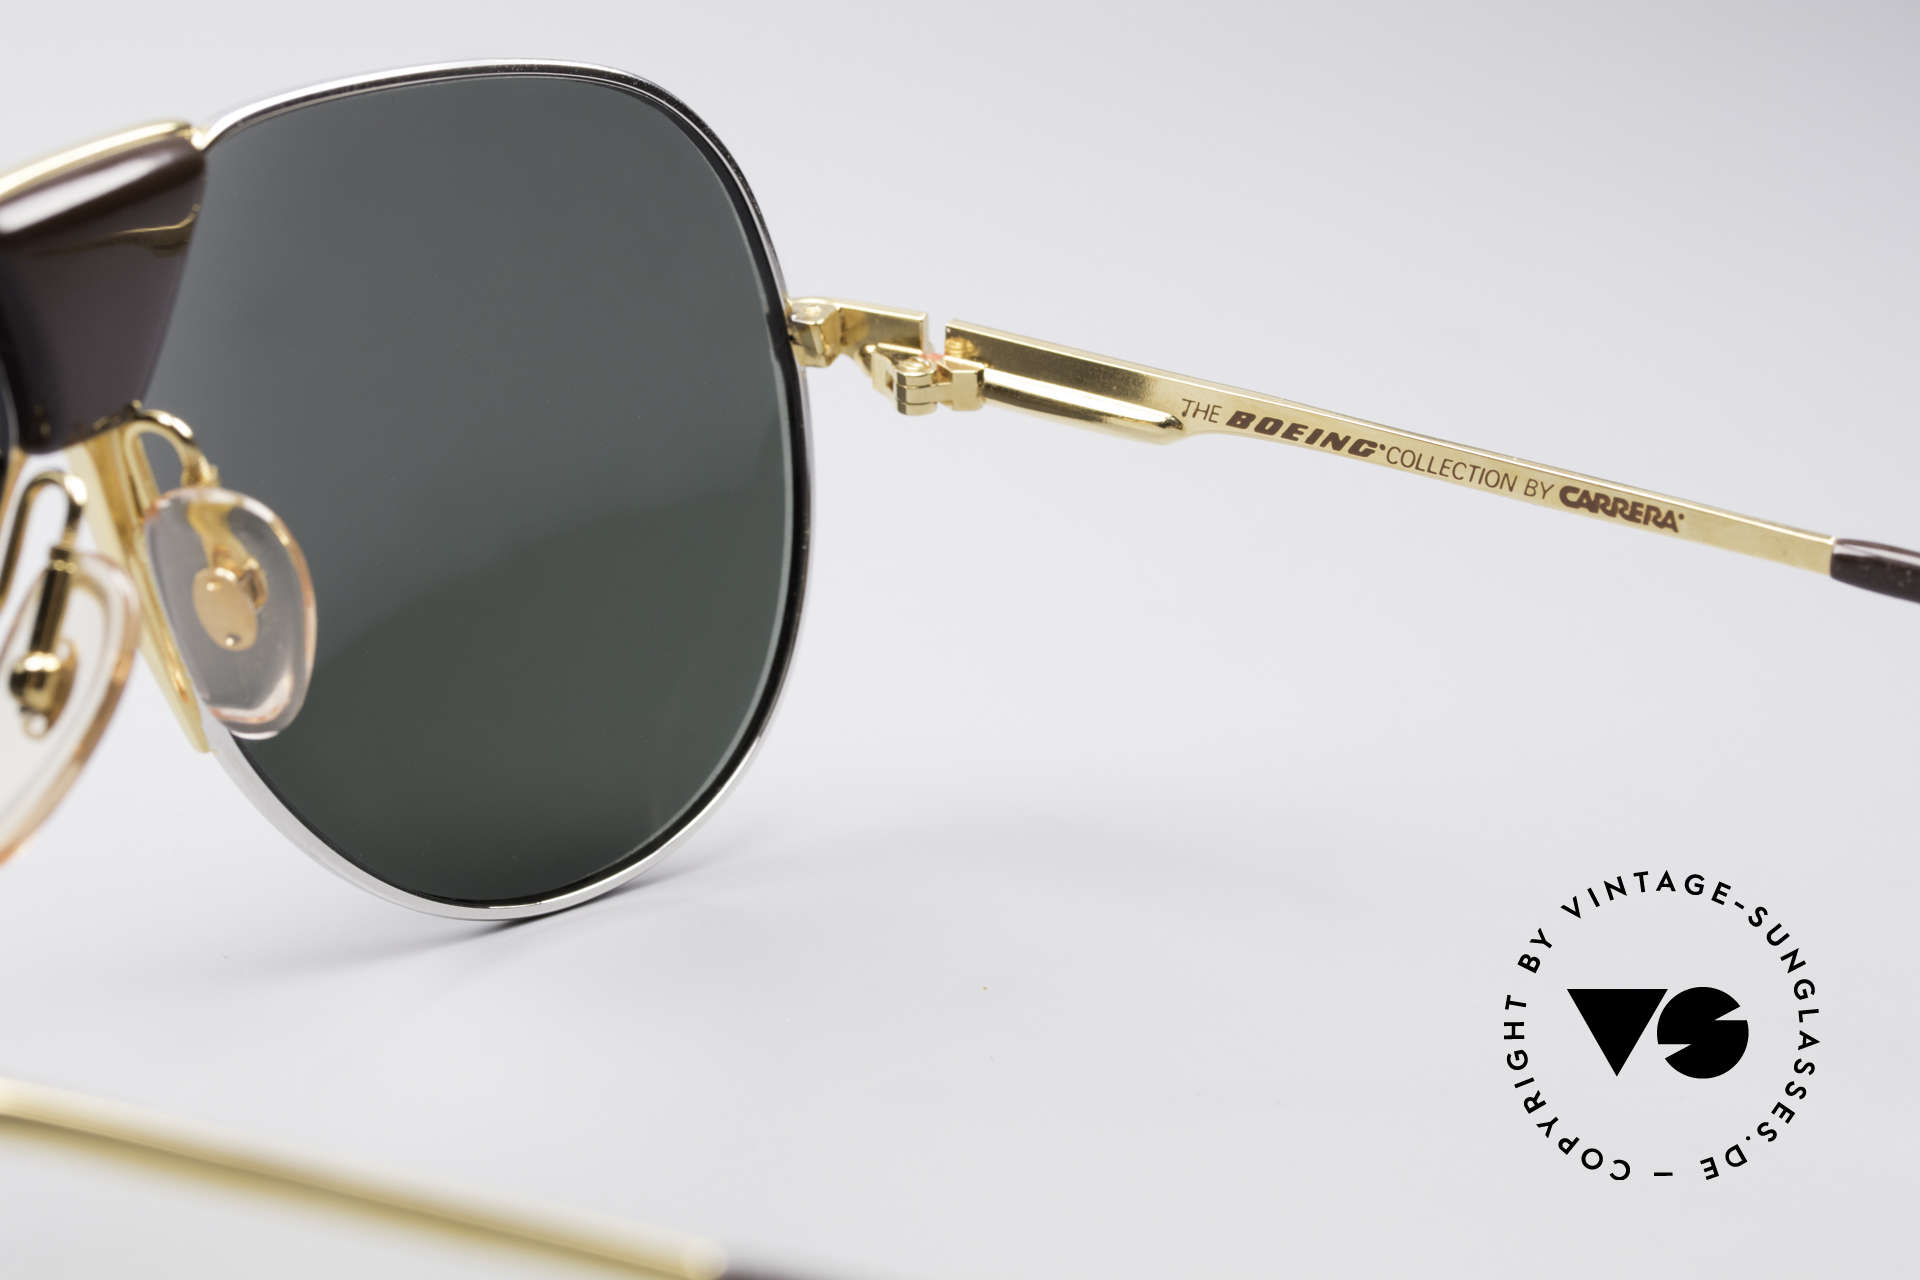 Boeing 5701 Famous 80's Pilots Shades, new old stock (like all our BOEING aviator shades), Made for Men and Women